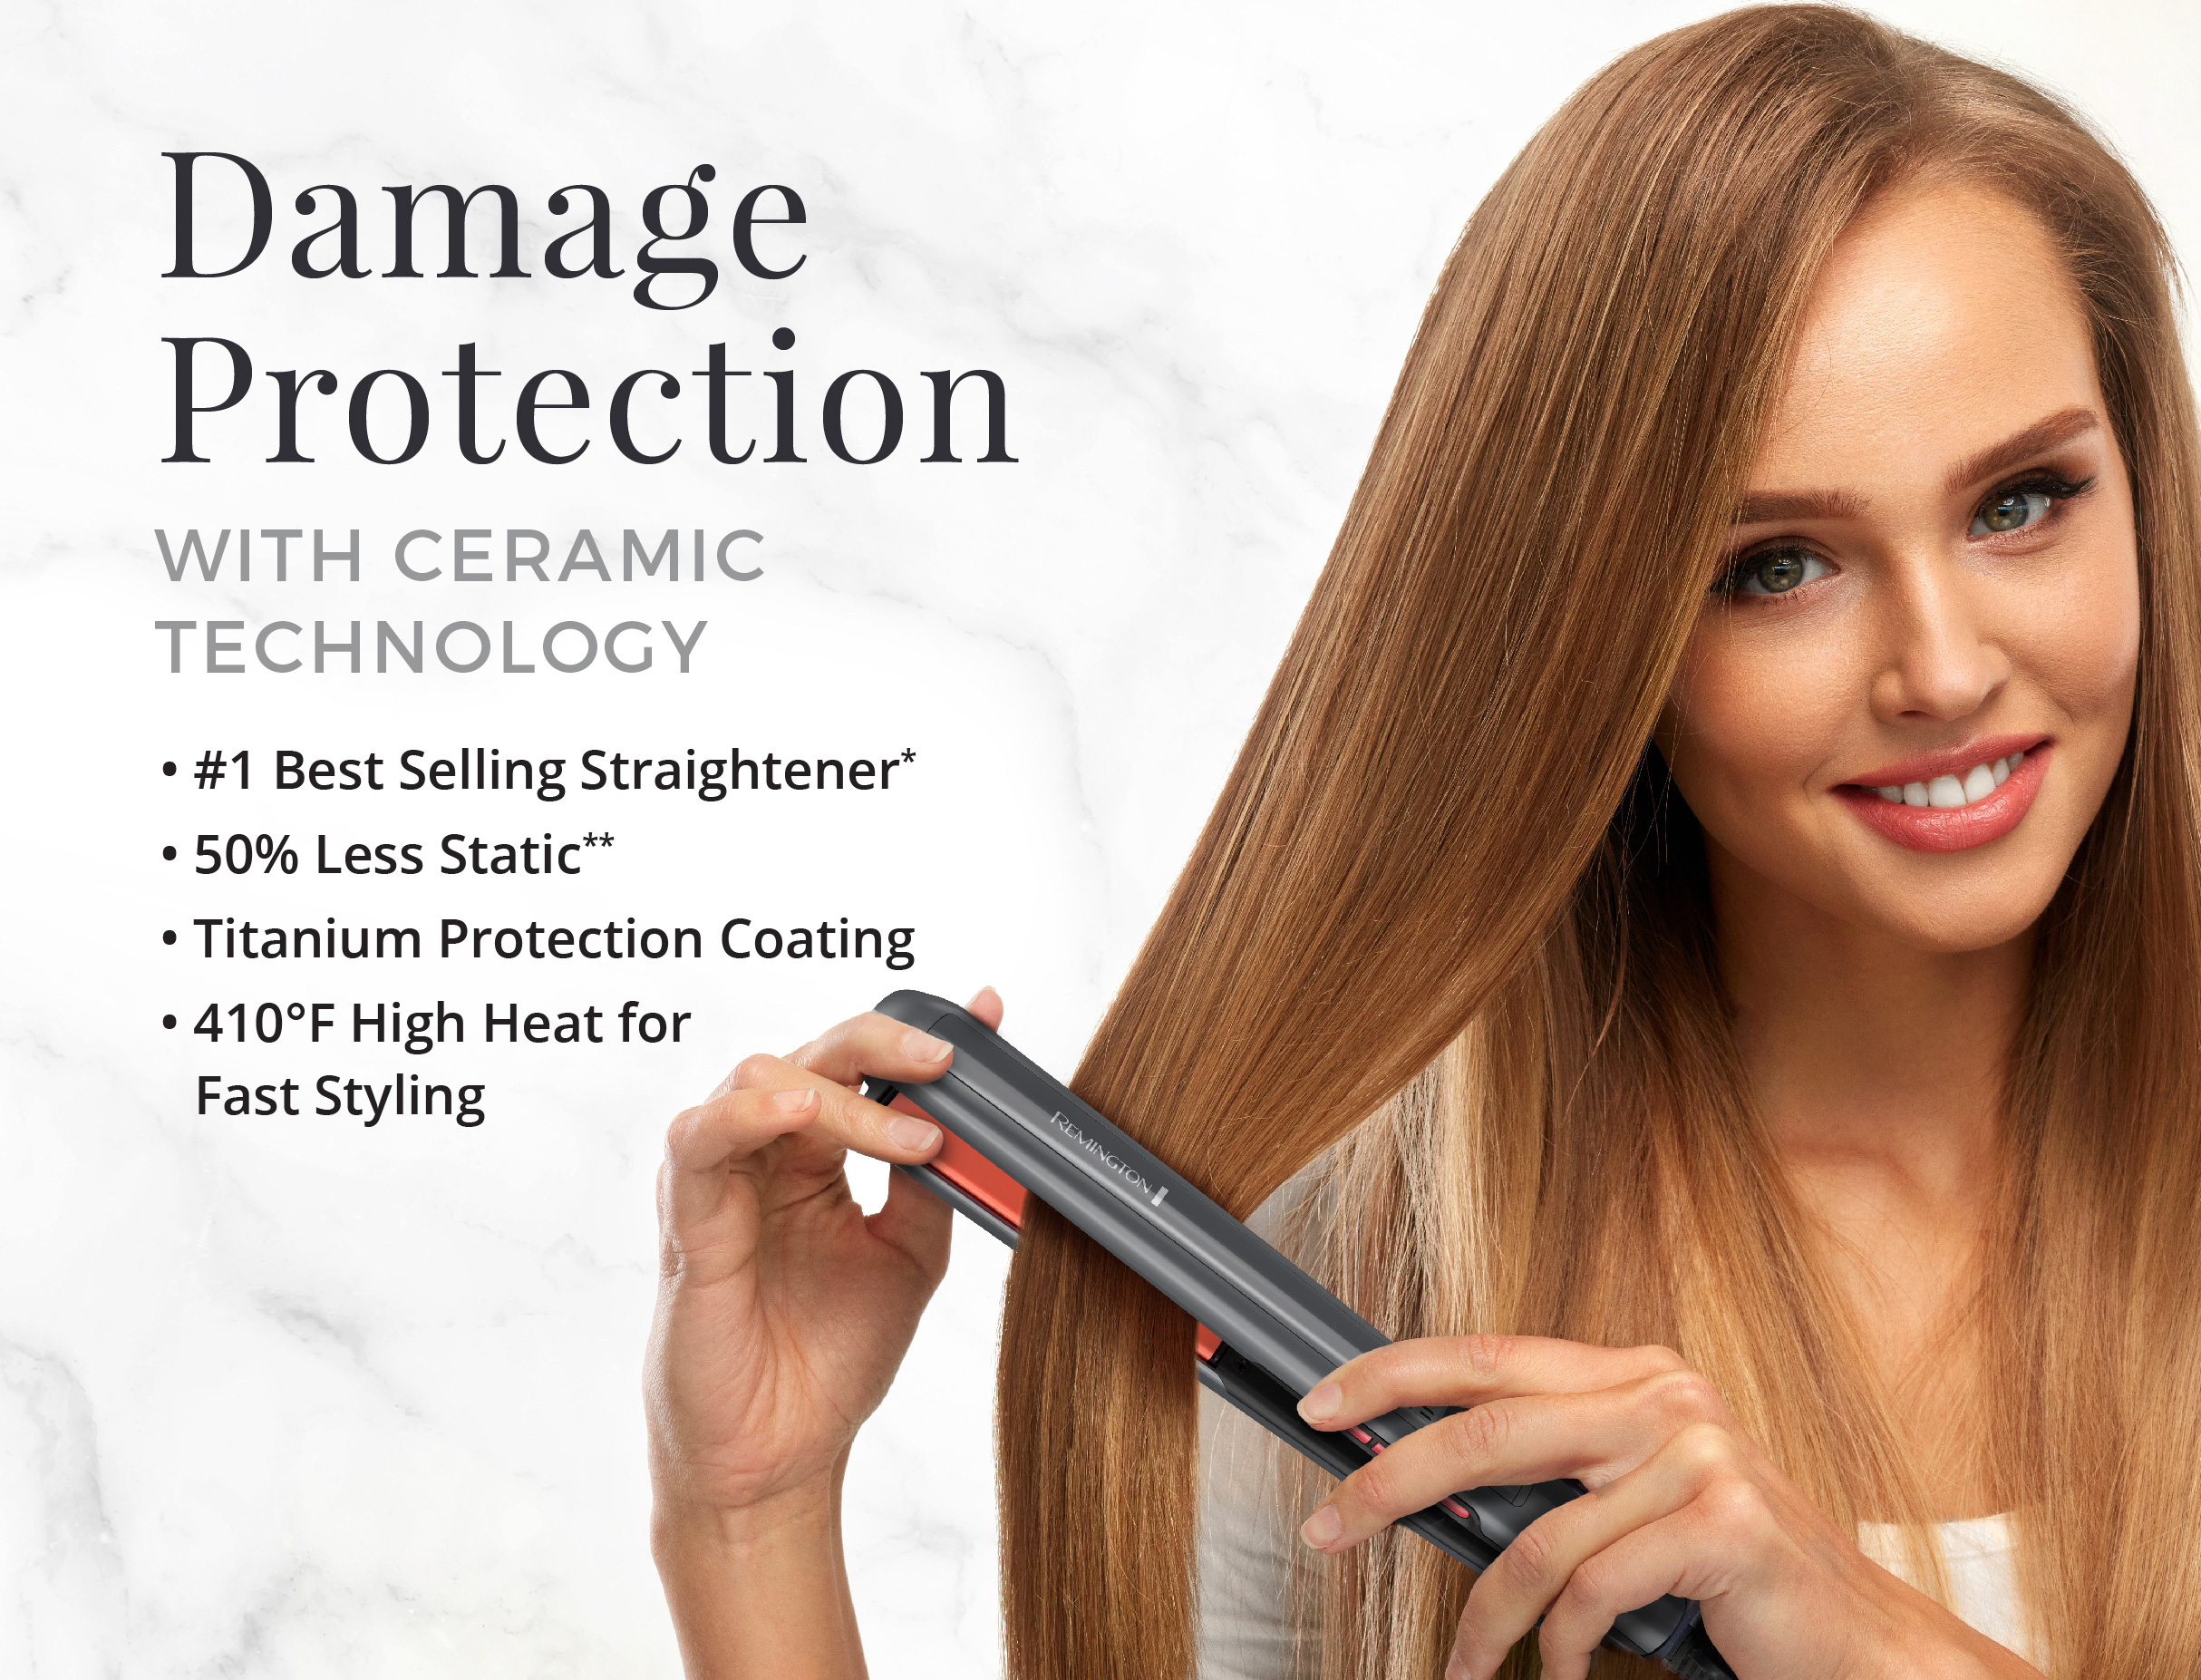 Damage Protection with ceramic technology. #1 best straightner. 50% less static. Titanium protection coating. 410 degrees F high heat for fast styling.